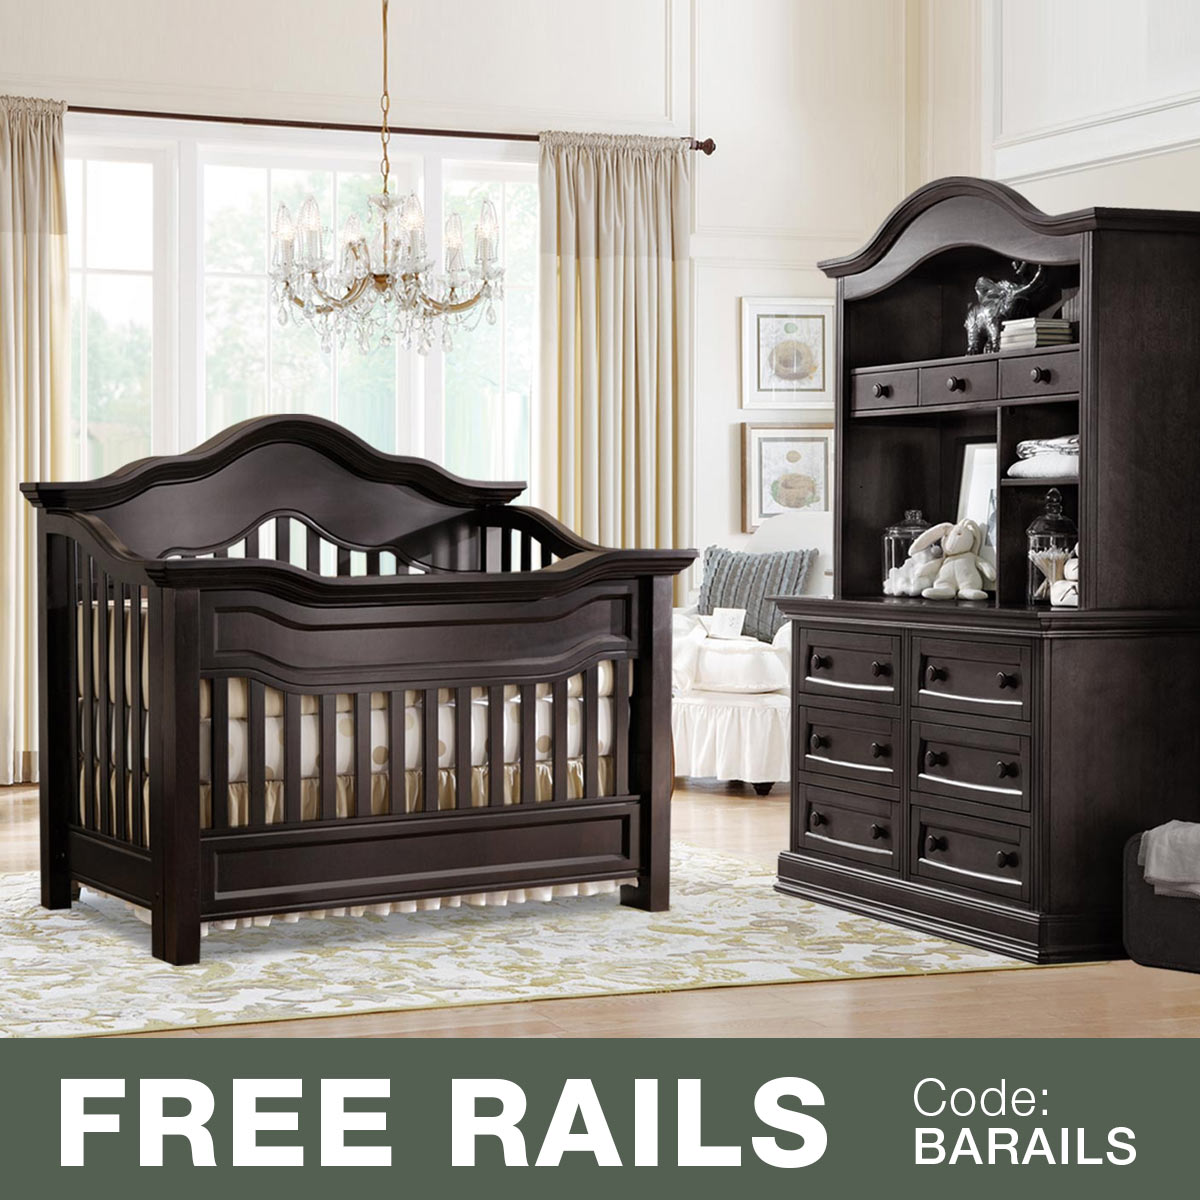 Baby Leseed Millbury 3 Piece Nursery Set Convertible Crib